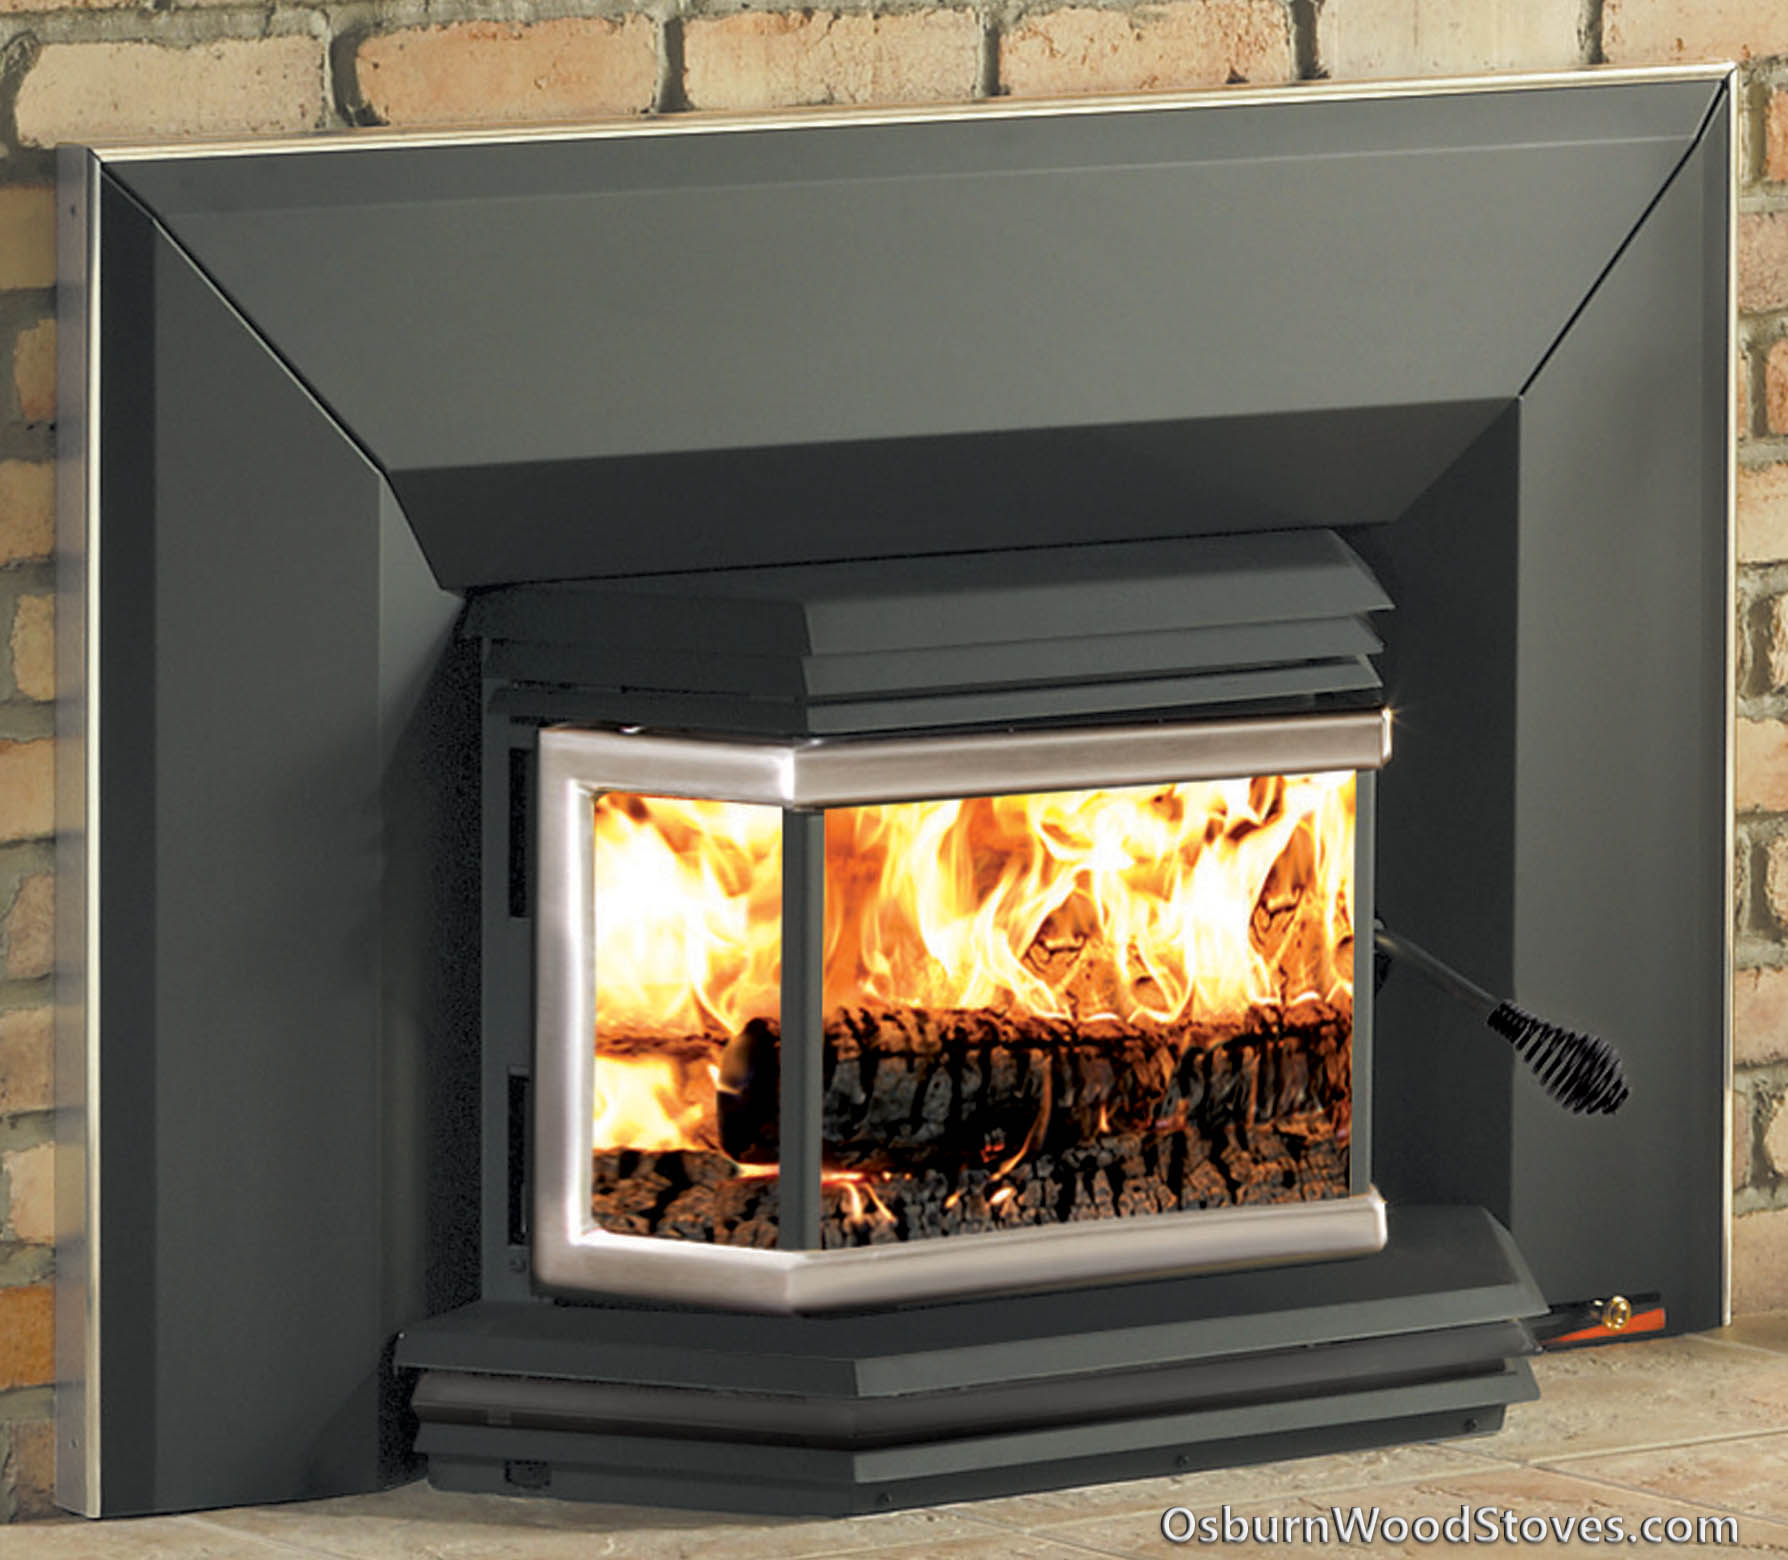 Osburn 1800 fireplace insert. Purchase your Osburn 1800 fireplace insert from OsburnWoodStoves.com. The Osburn 1800 will heat a home up to 1800 square feet. The Osburn 1800 is a 65